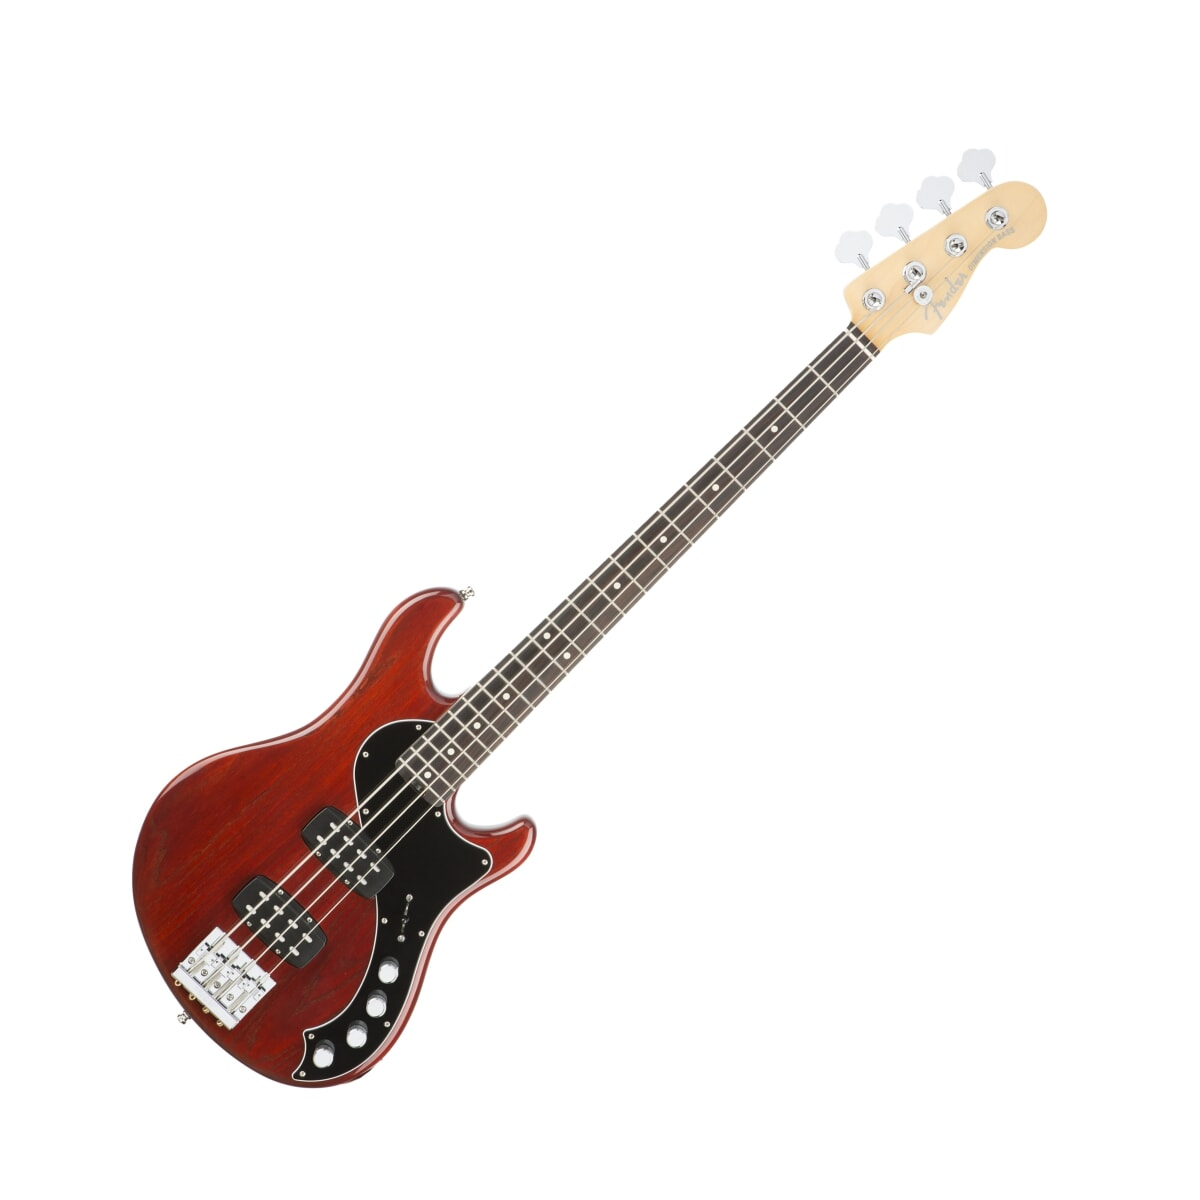 FENDER AMERICAN DELUXE DIMENSION BASS IV HH RW CAY